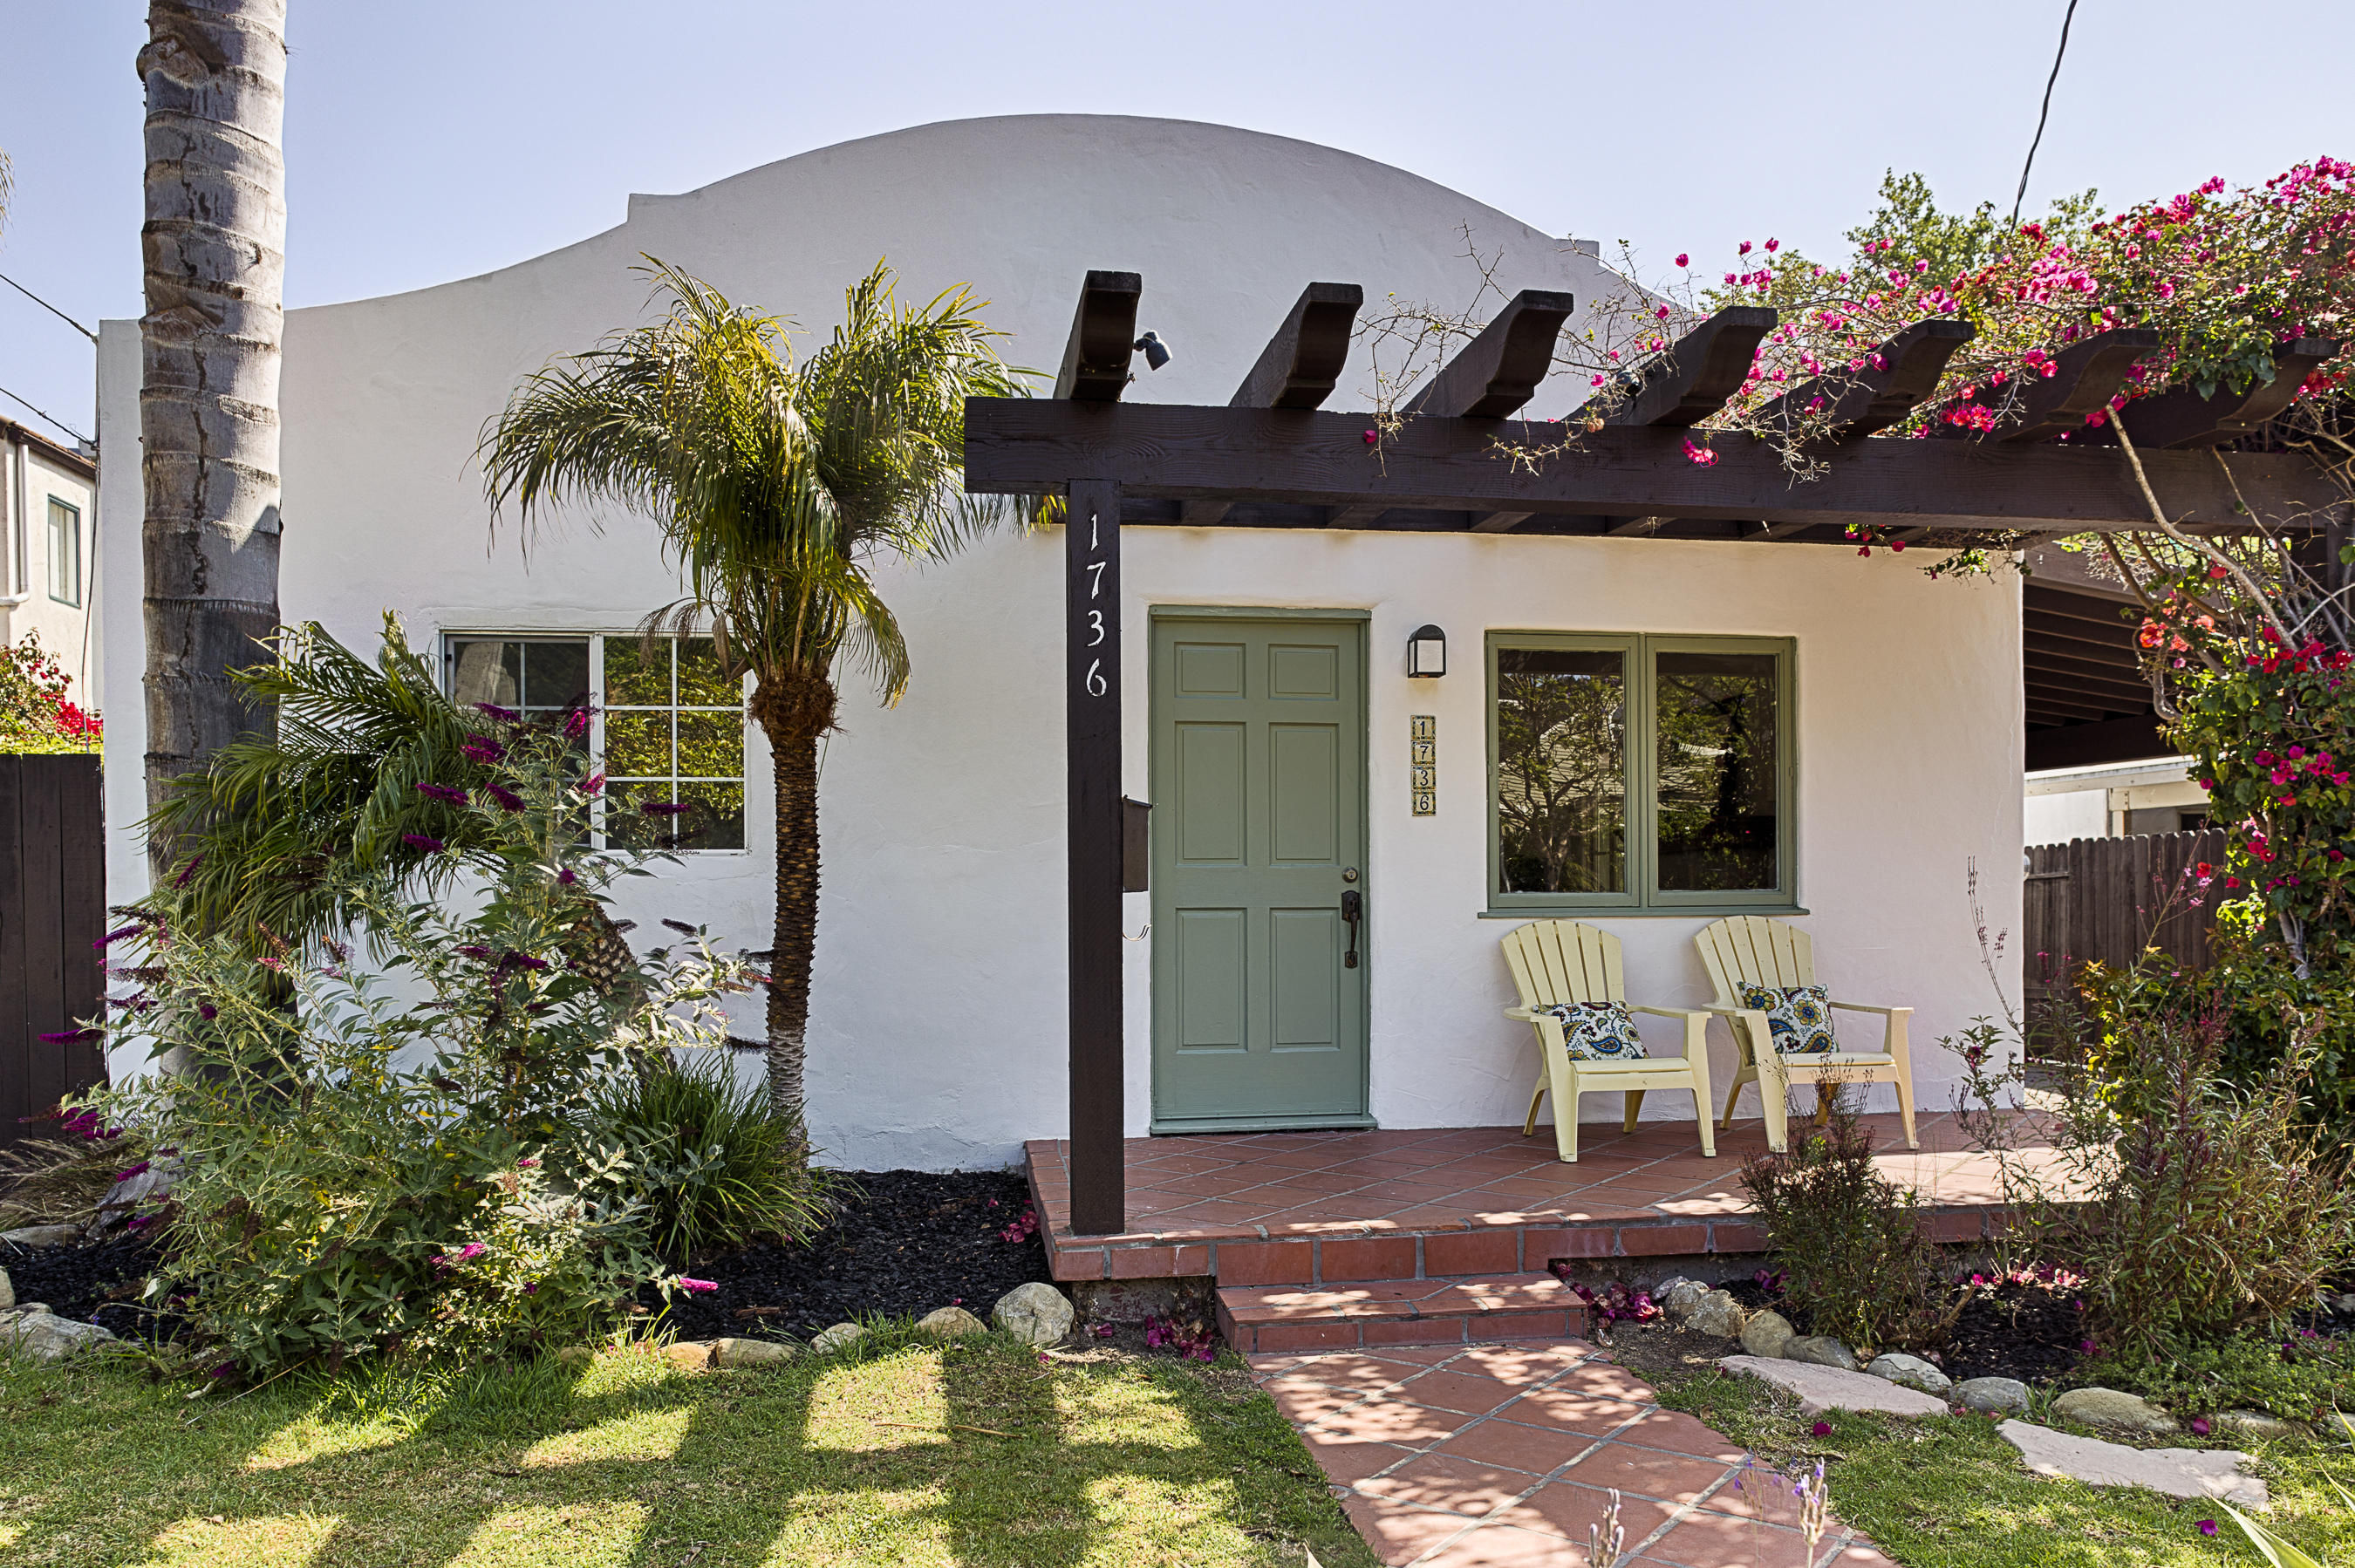 Property photo for 1736 Clearview Rd Santa Barbara, California 93101 - 16-2530